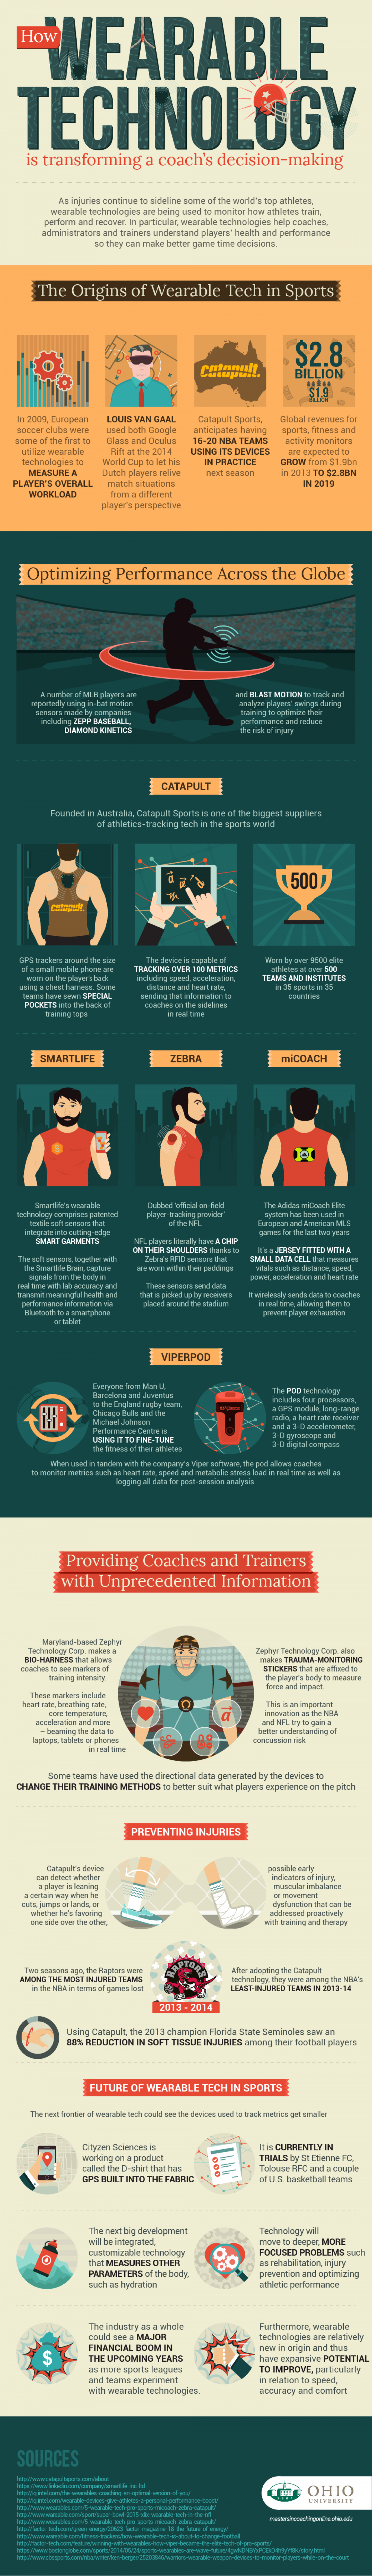 How Wearable Technology is Transforming a Coach's Decision-Making Infographic